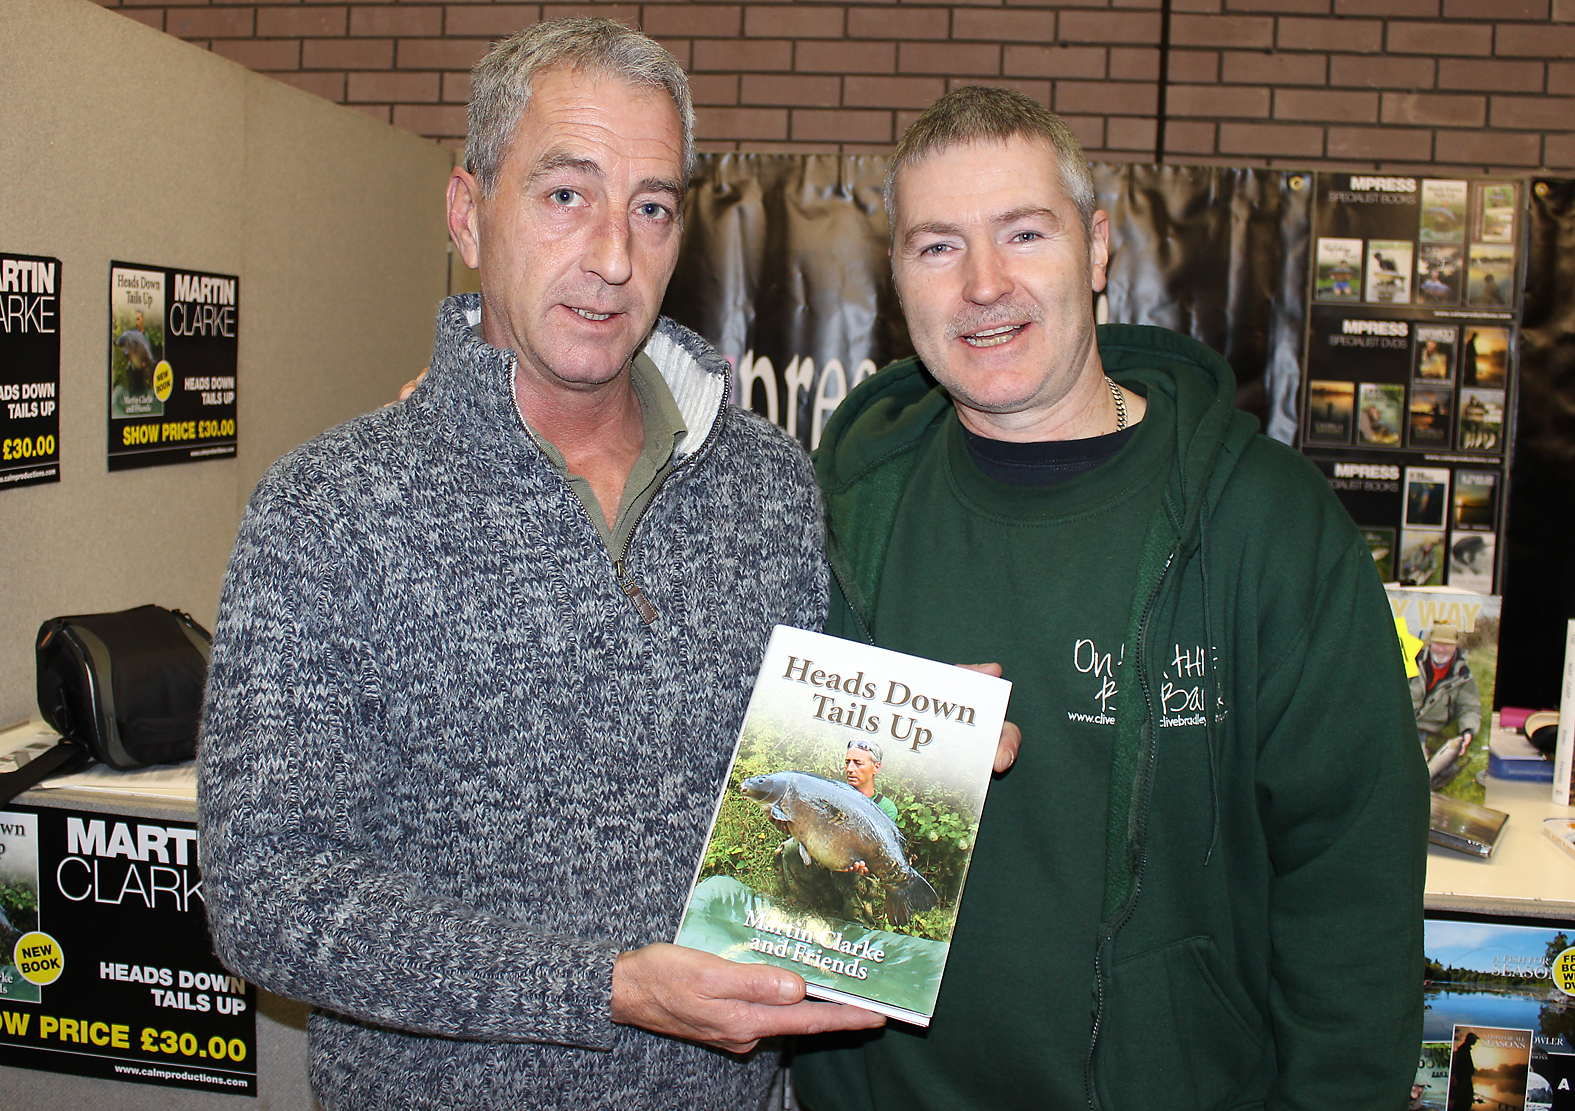 Carp angler and author Martin Clarke, showing off his latest publication